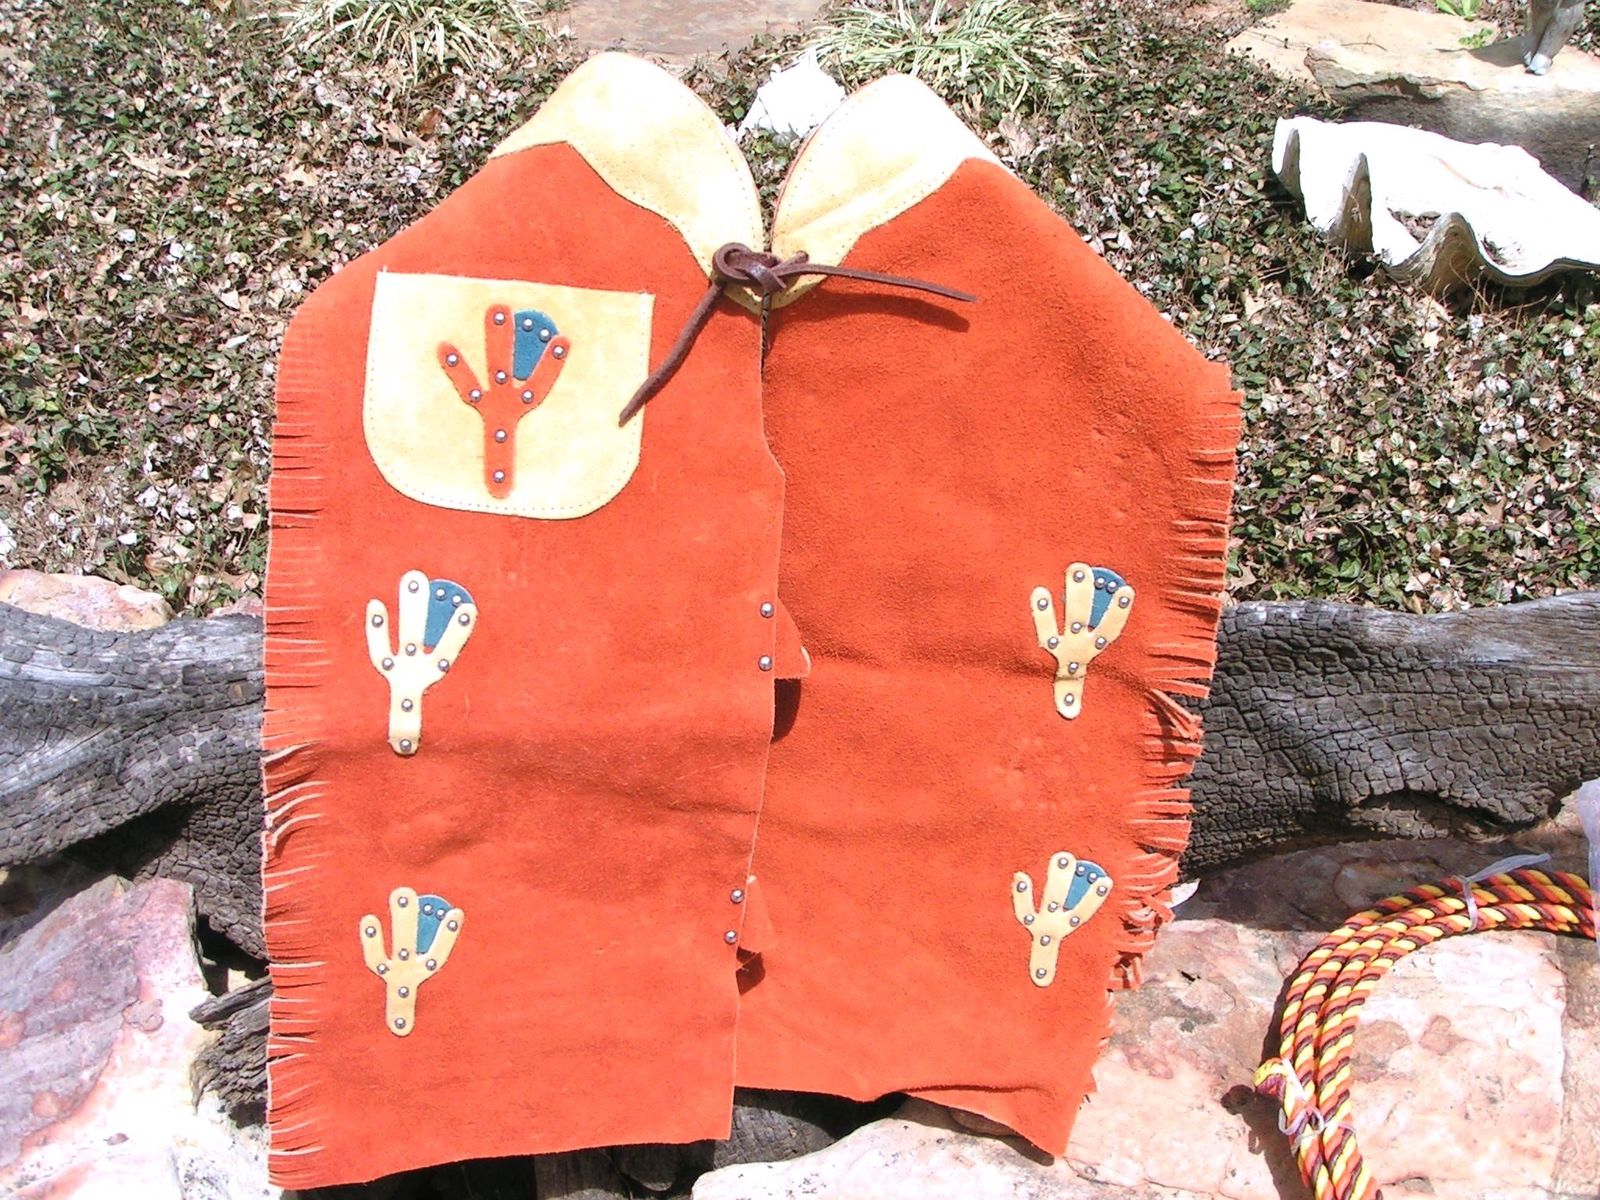 Boys Leather Chaps Vest Lasso Western Outfit Size Small 2-3 yrs